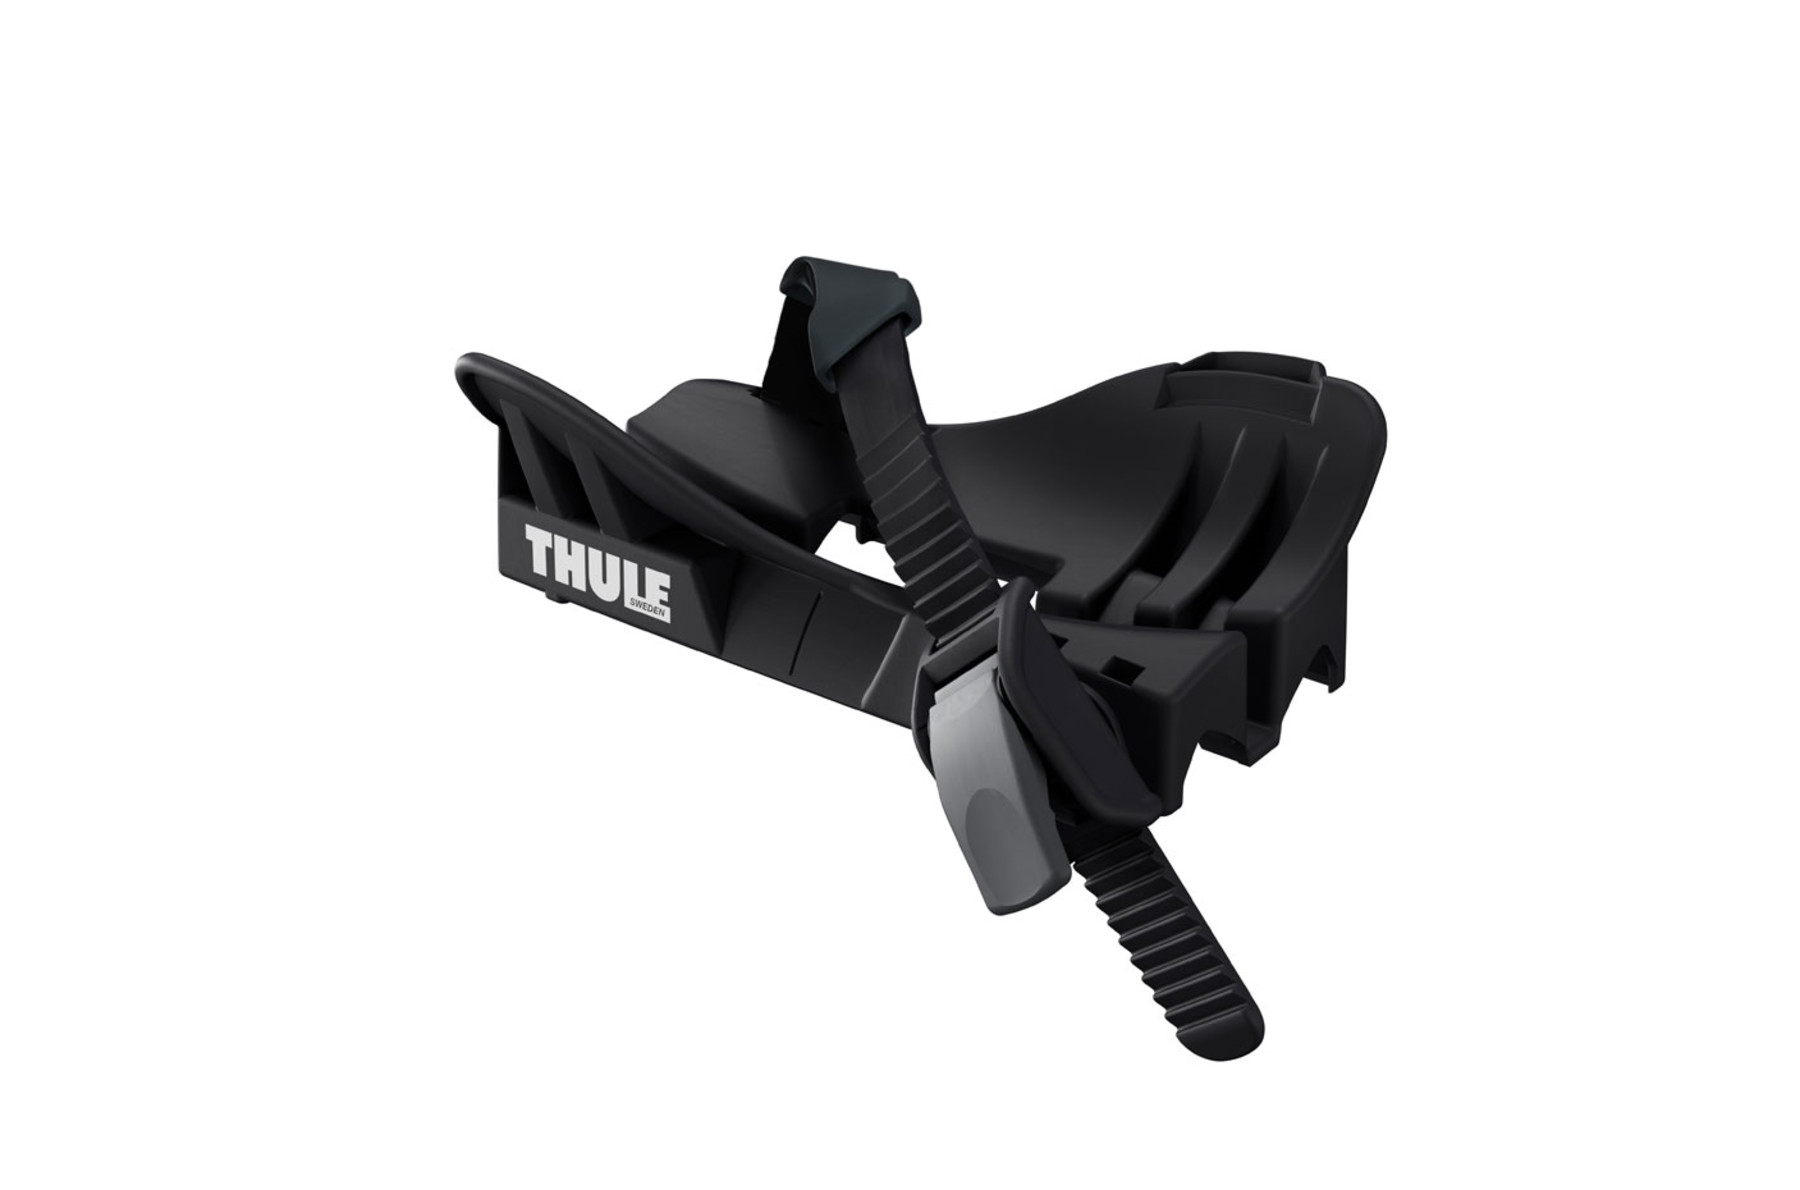 Bike accessory-Thule ProRide Fatbike Adapter